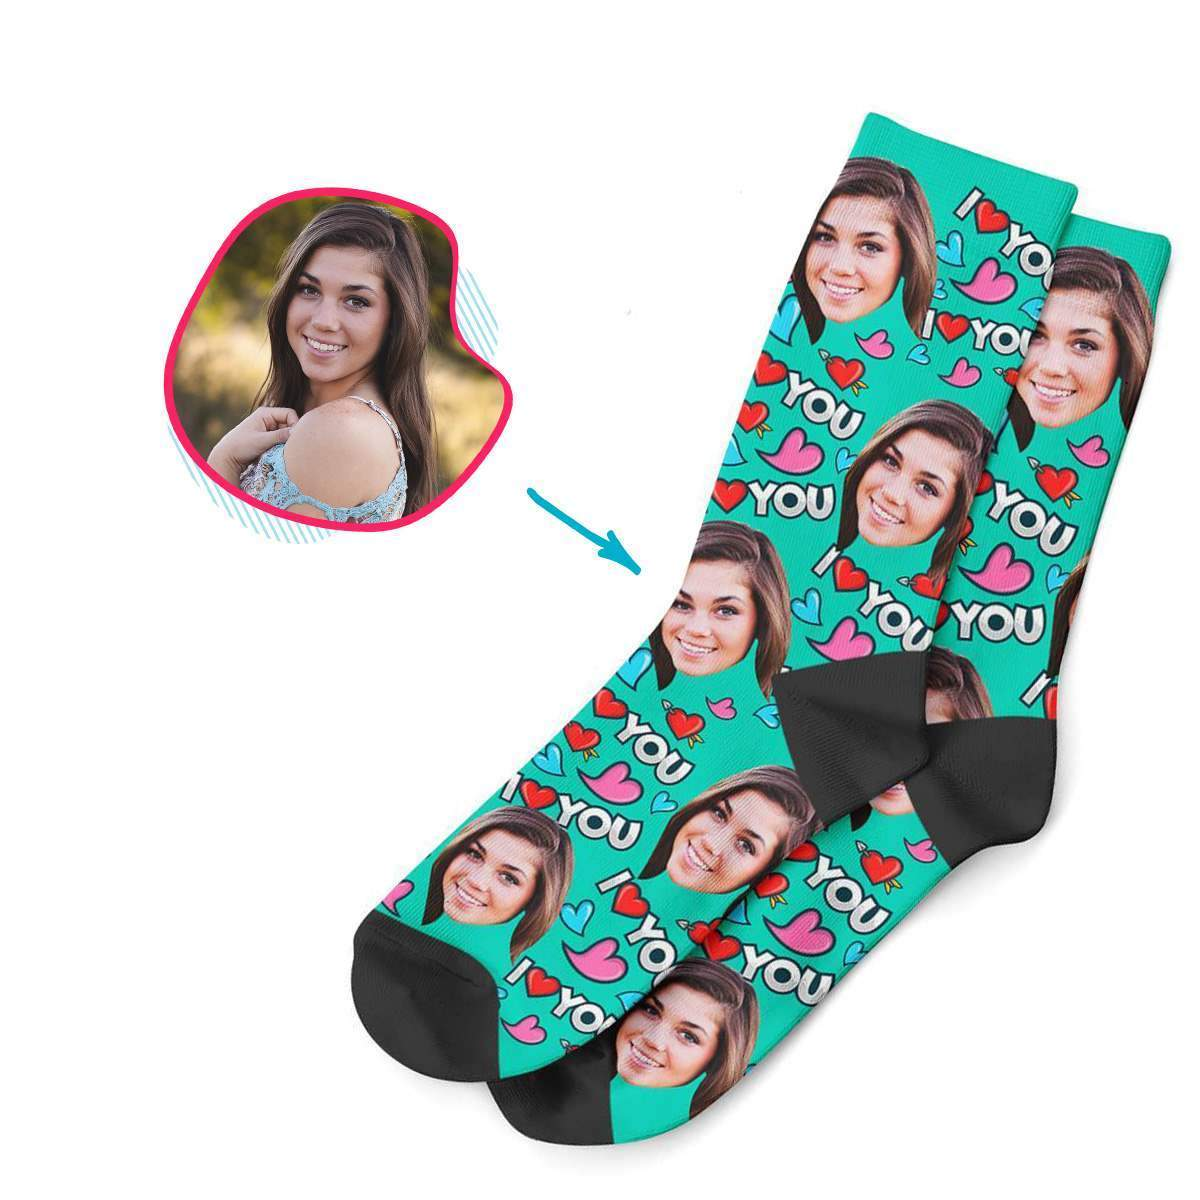 mint Love You socks personalized with photo of face printed on them